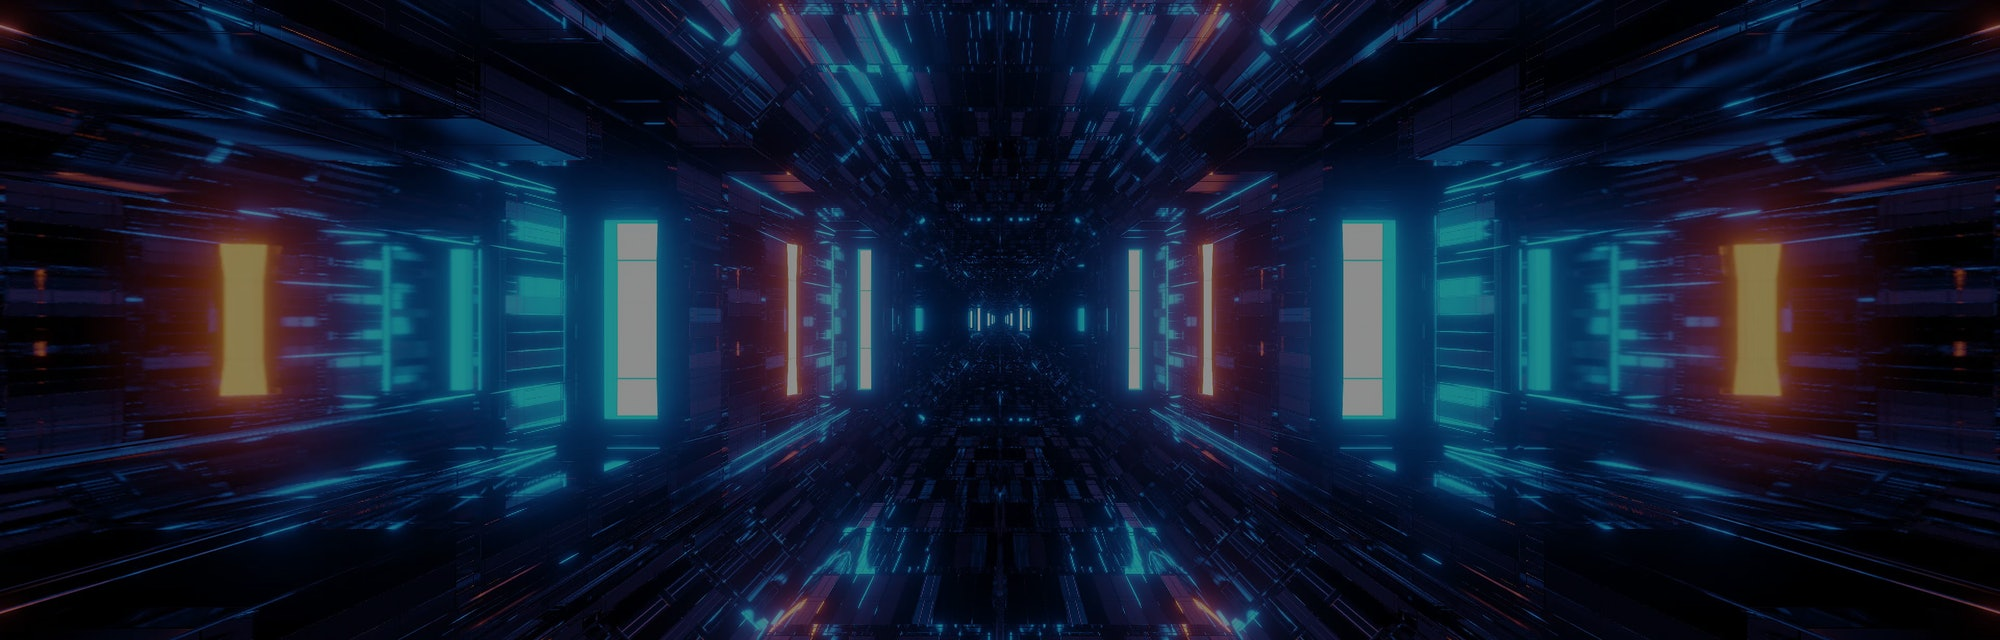 beautiful futuristic scifi space ship tunnel background 3d illustration 3d rendering loop endless lo...